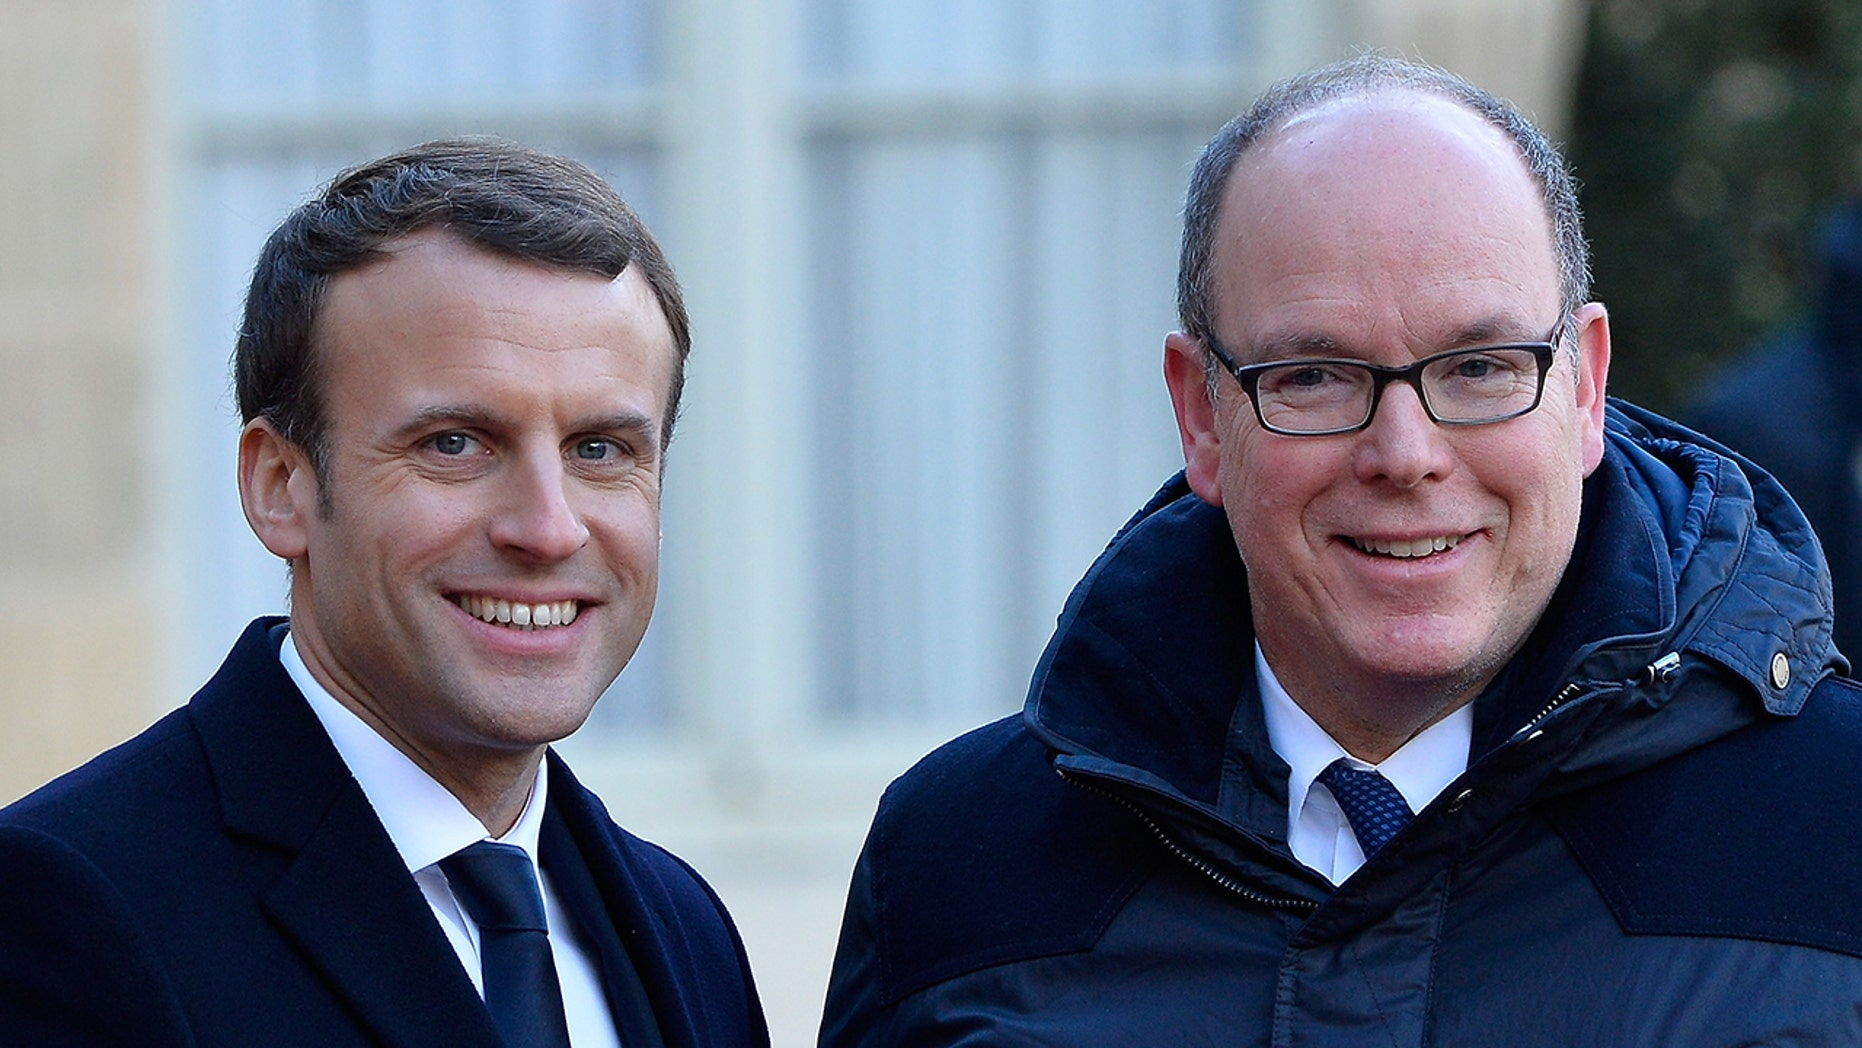 French President Emmanuel Macron and Prince Albert II of Monaco on Dec. 12, 2017 in Paris.